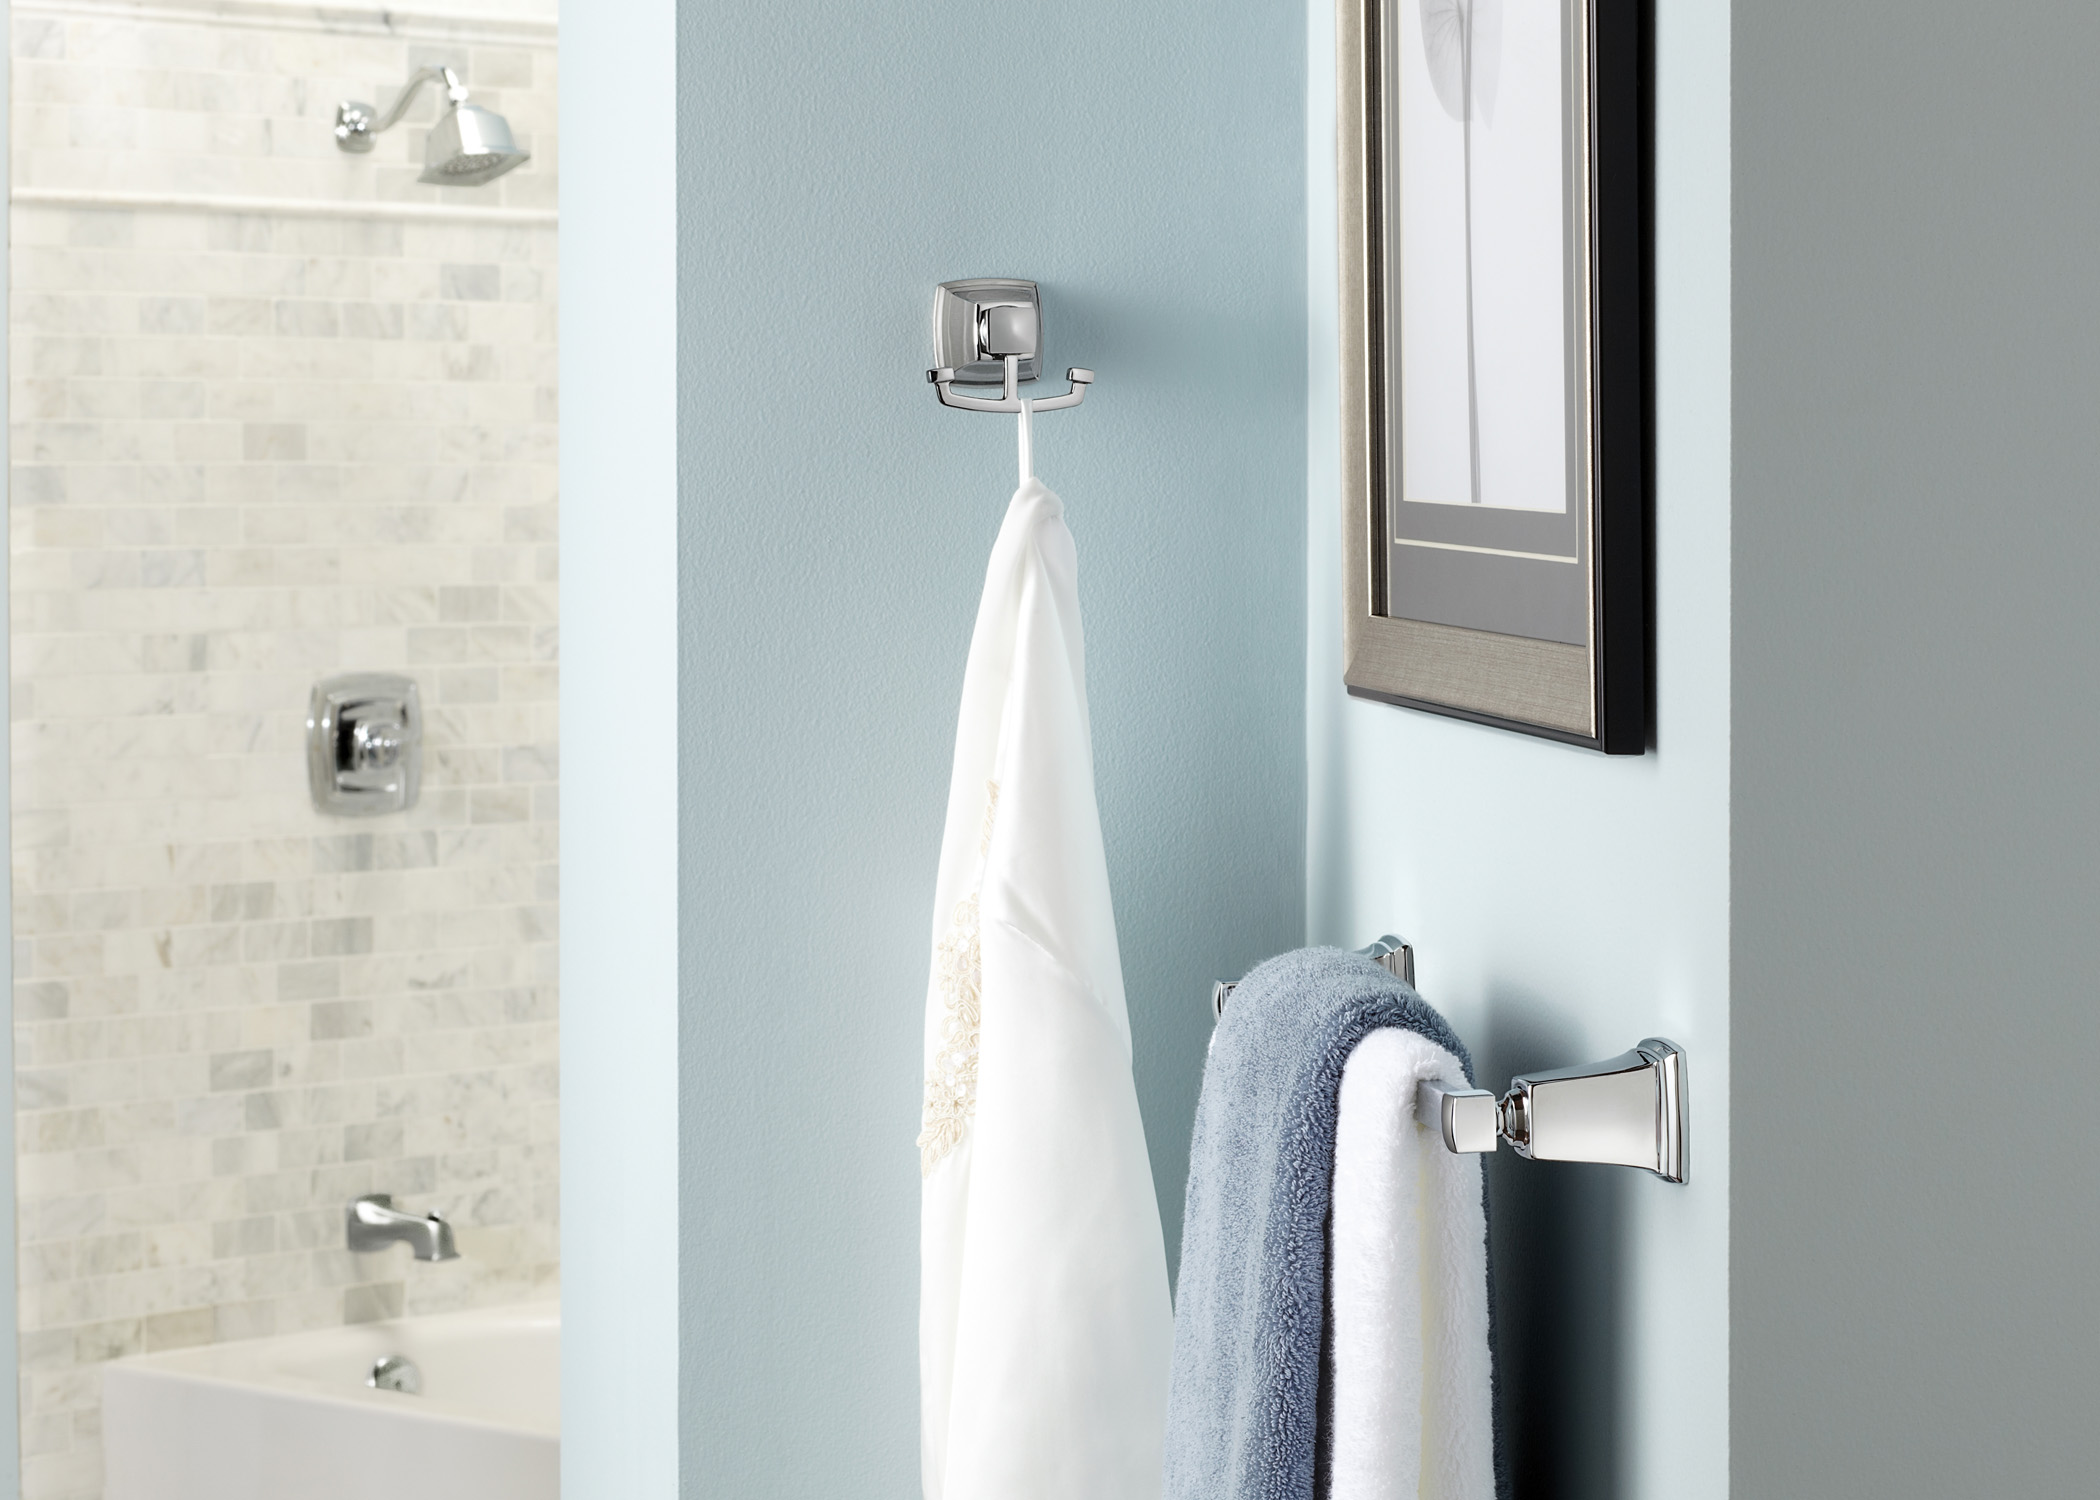 G Moen Boardwalk Bath Collection Offers Perfectly Matched Faucets And  Accessories To Create A Classic Look In The Bath